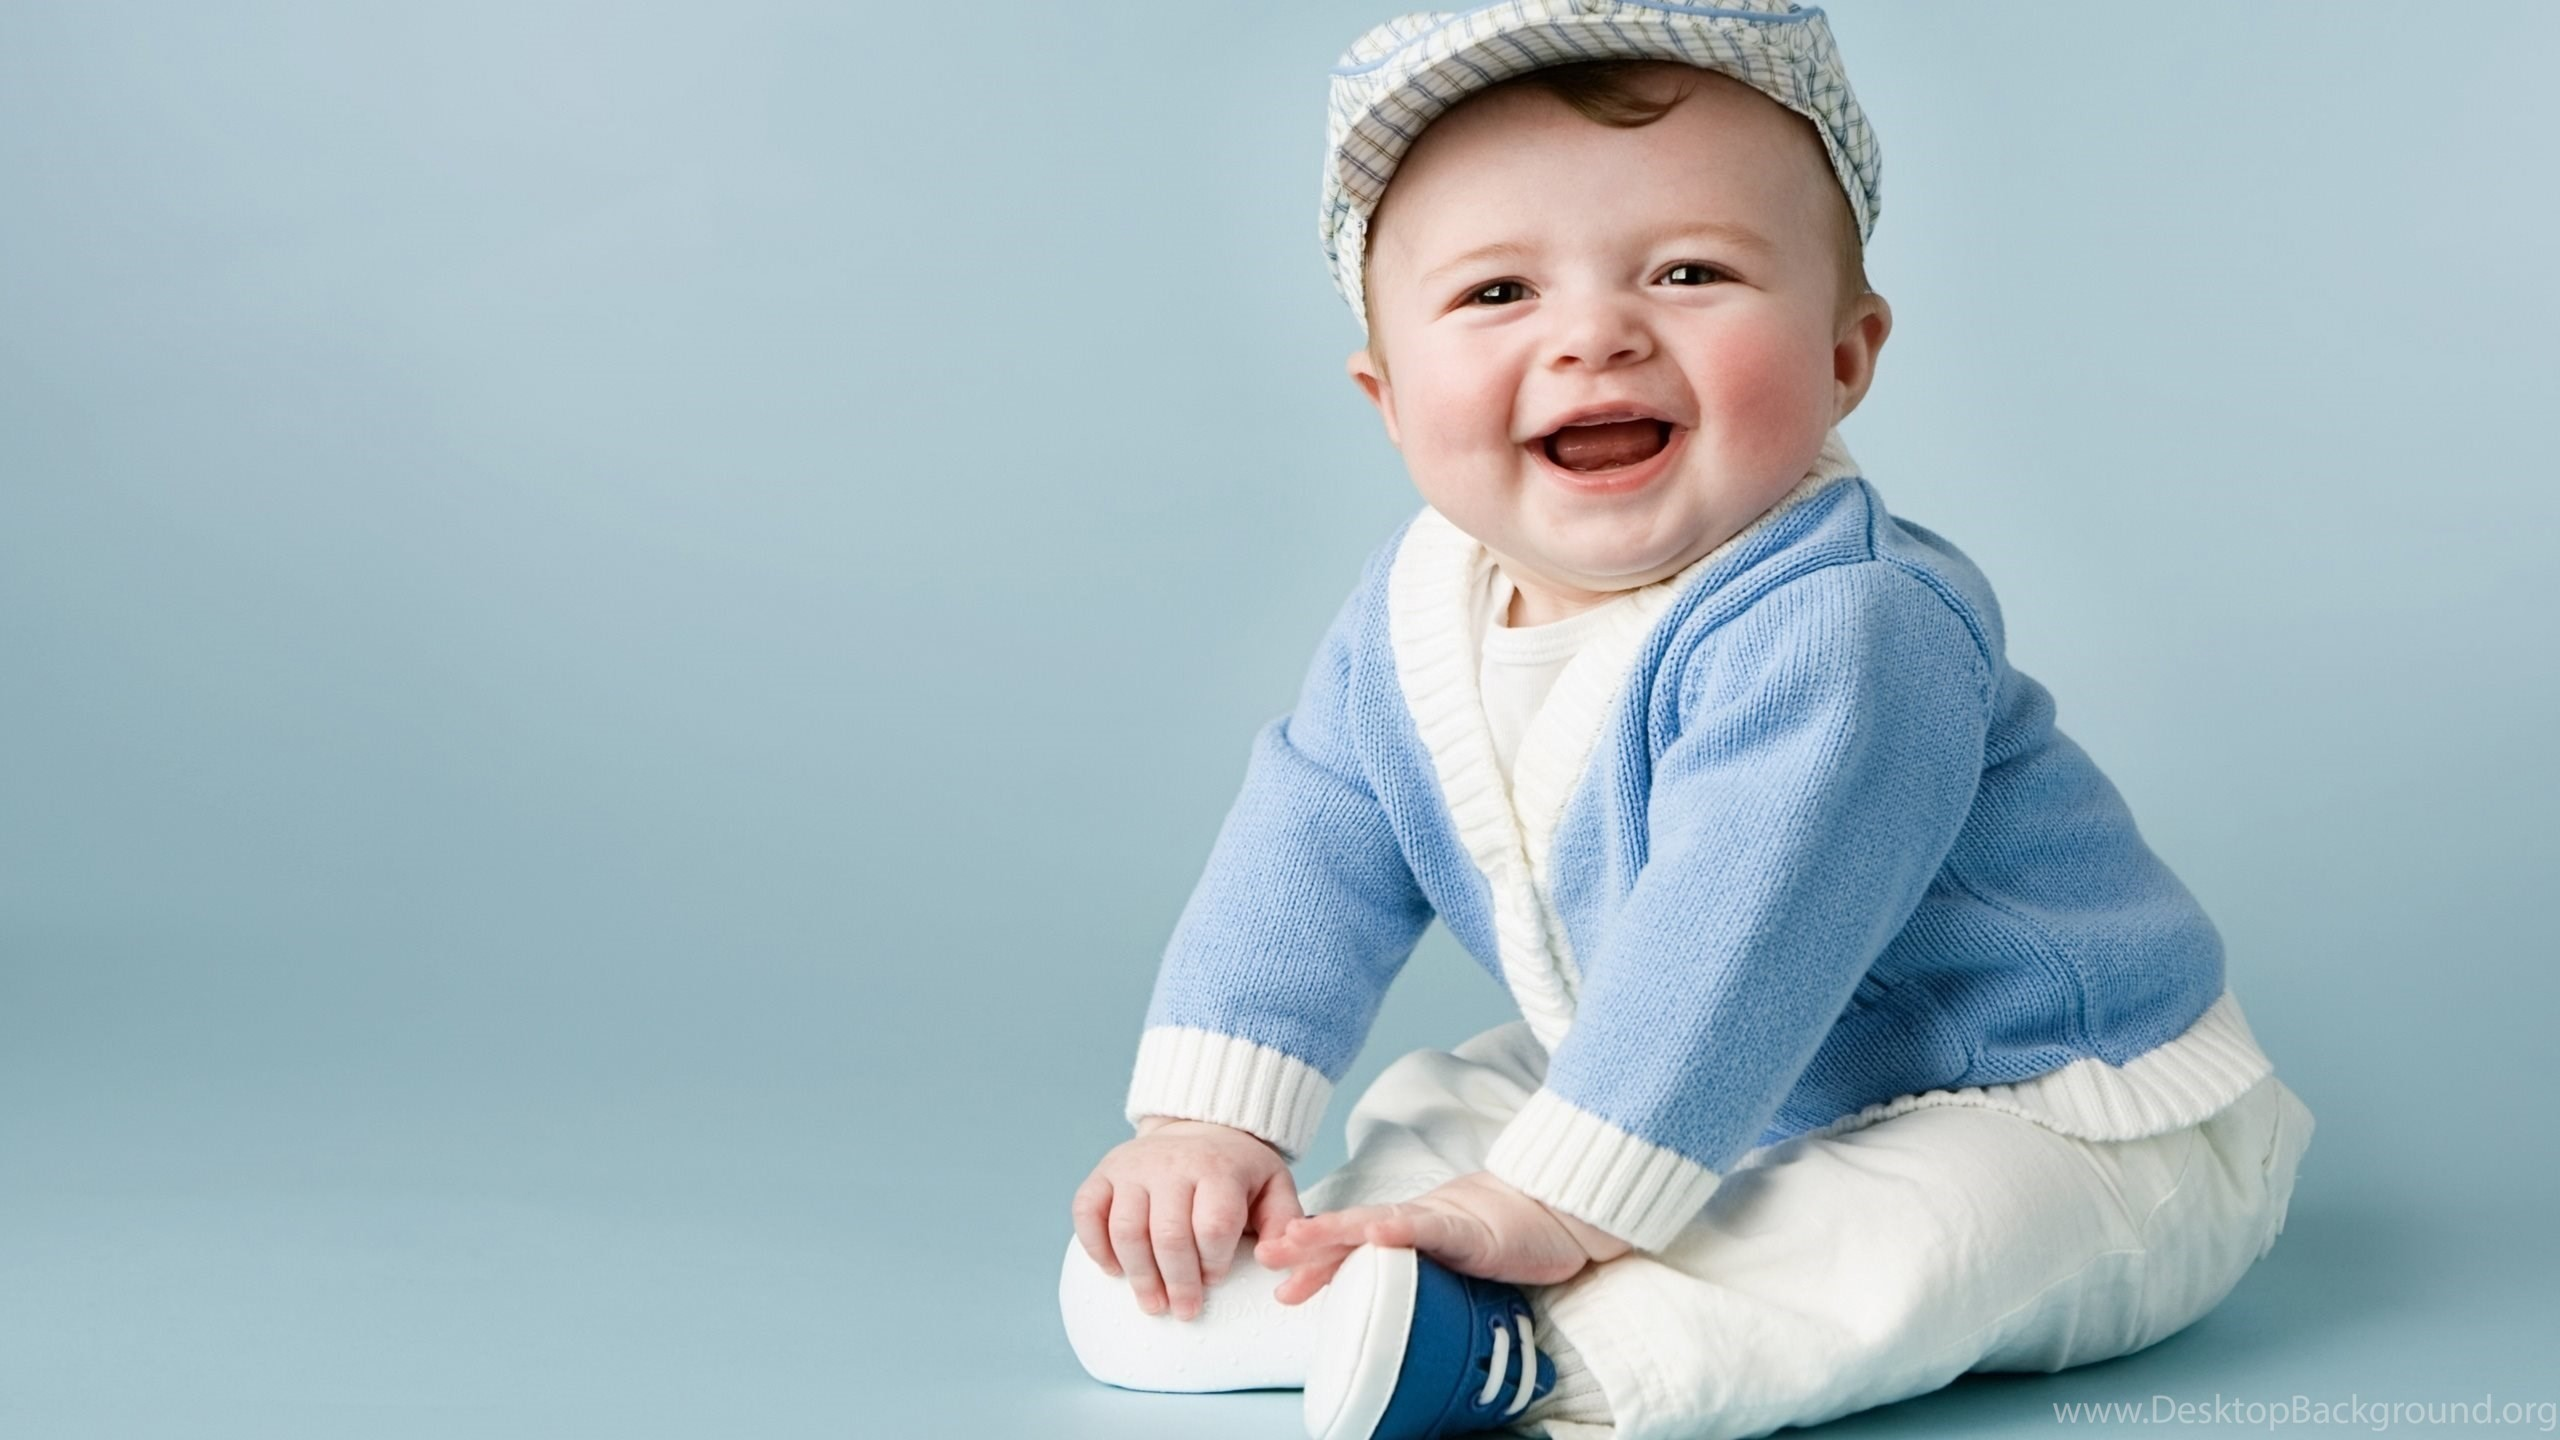 Cute Baby Backgrounds 40 Images